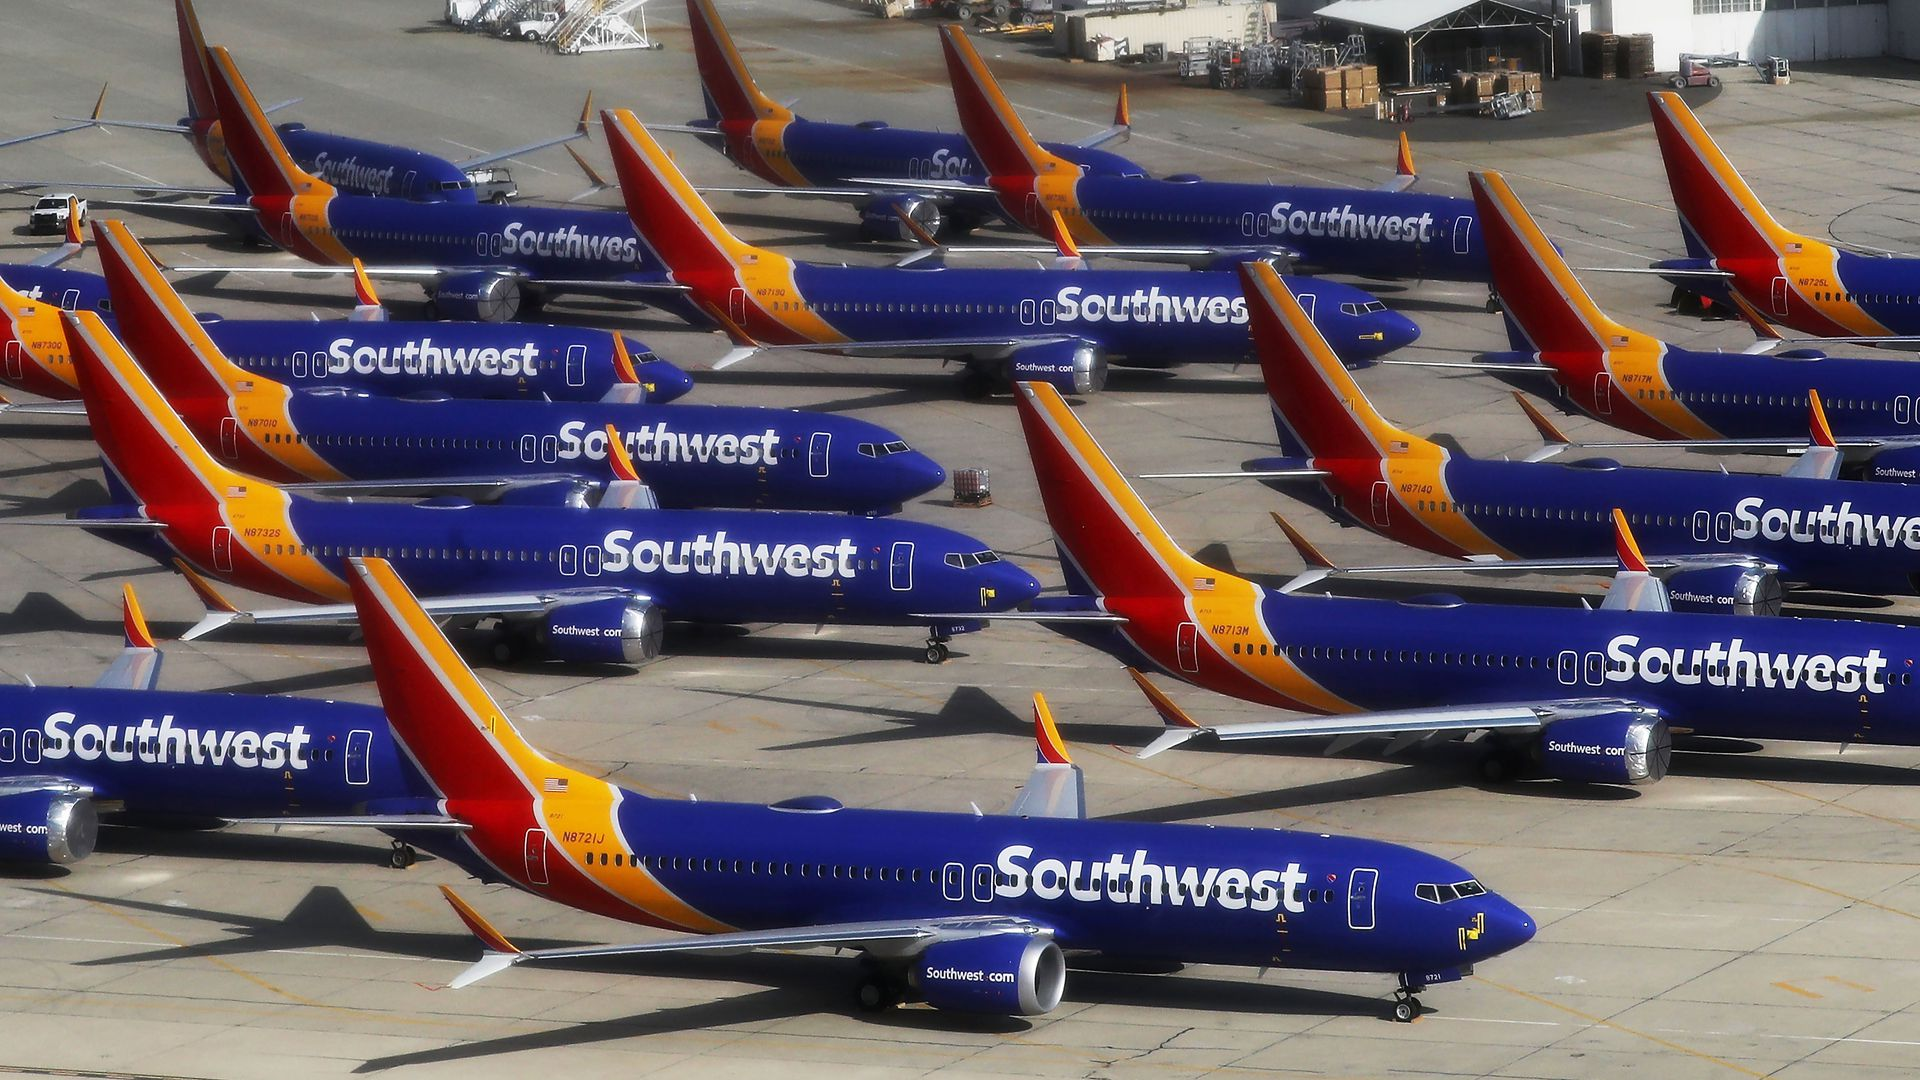 Southwest Airlines' Boeing 737 MAX aircraft.